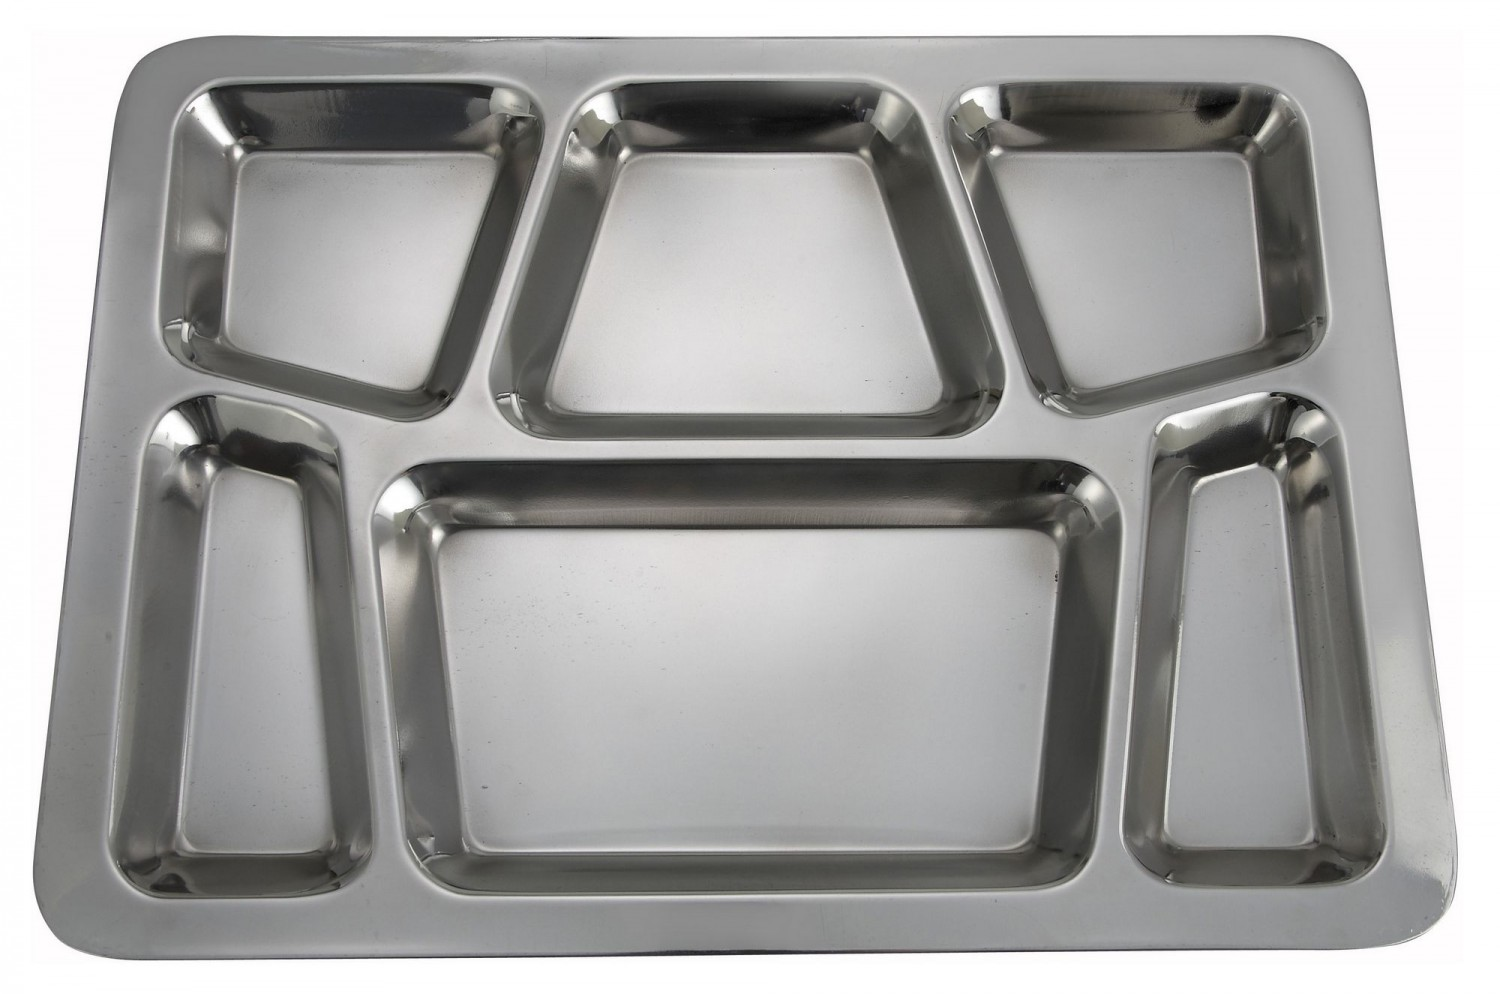 Winco SMT-2 6-Compartment Mess Tray, Style B